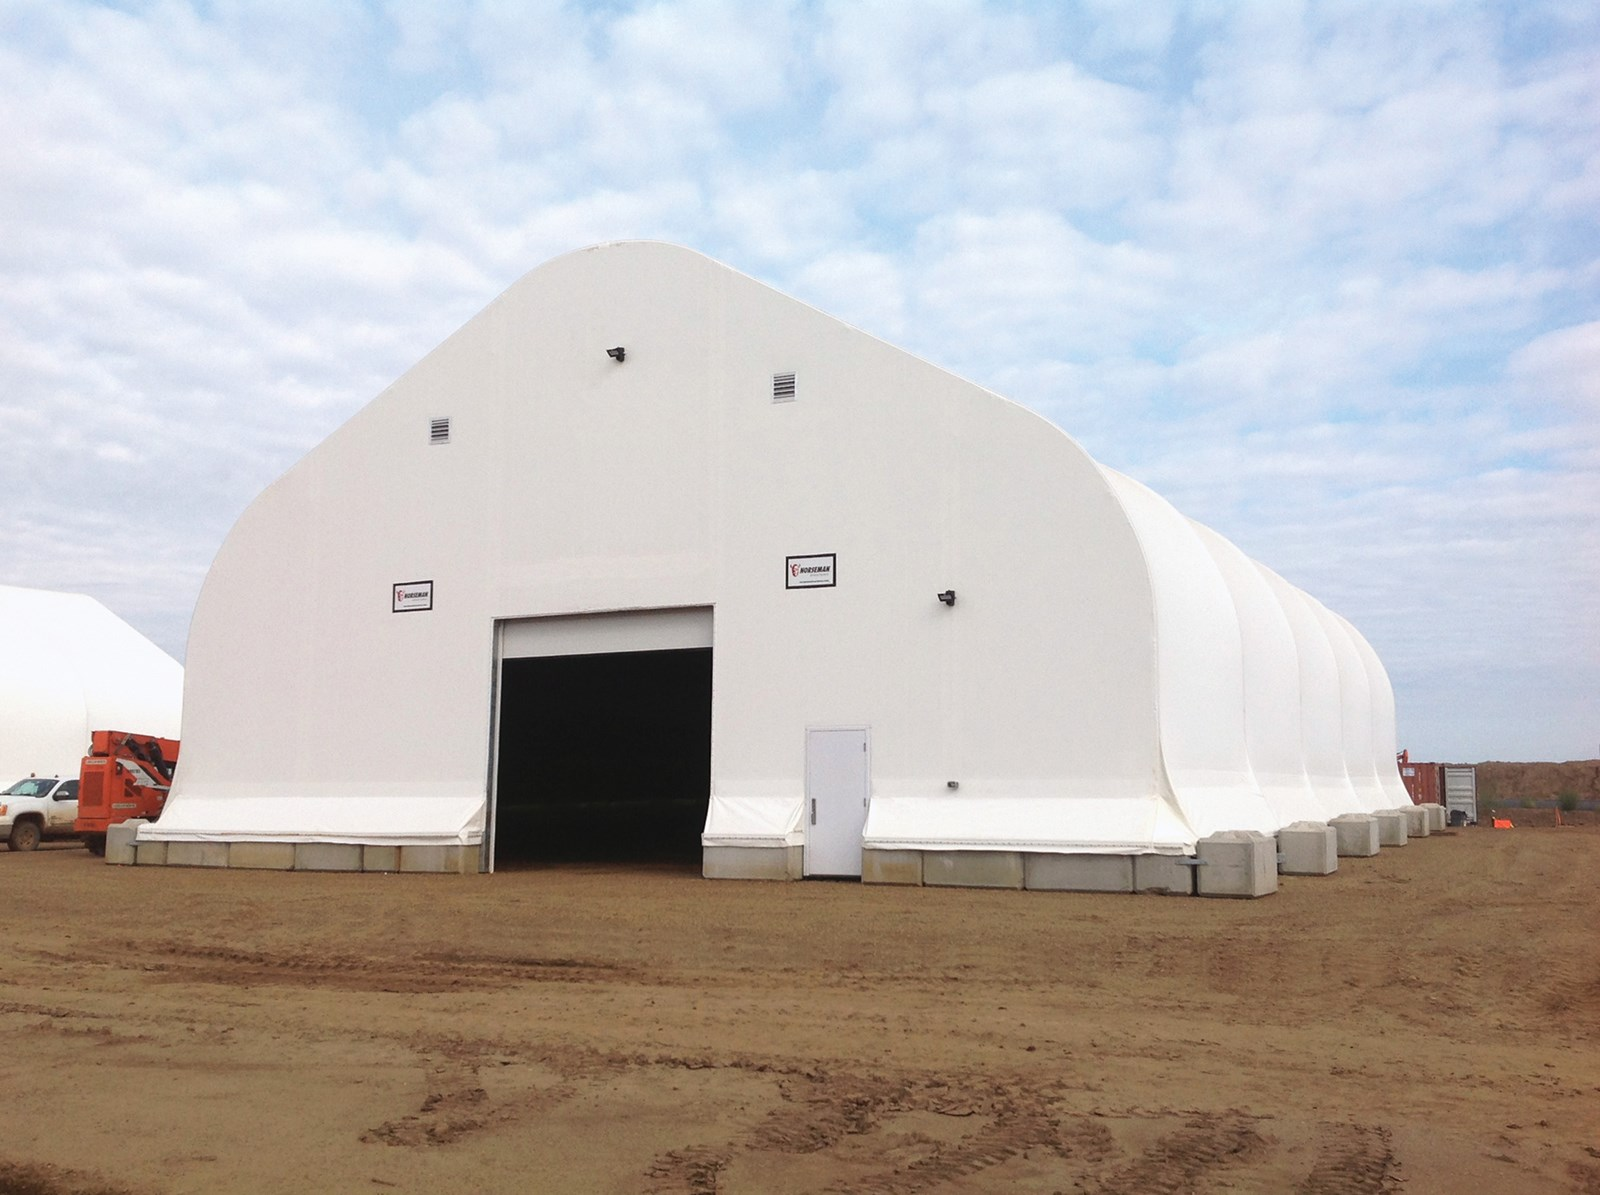 oil-gas-energy-warehouse-storage-buildings-suncor